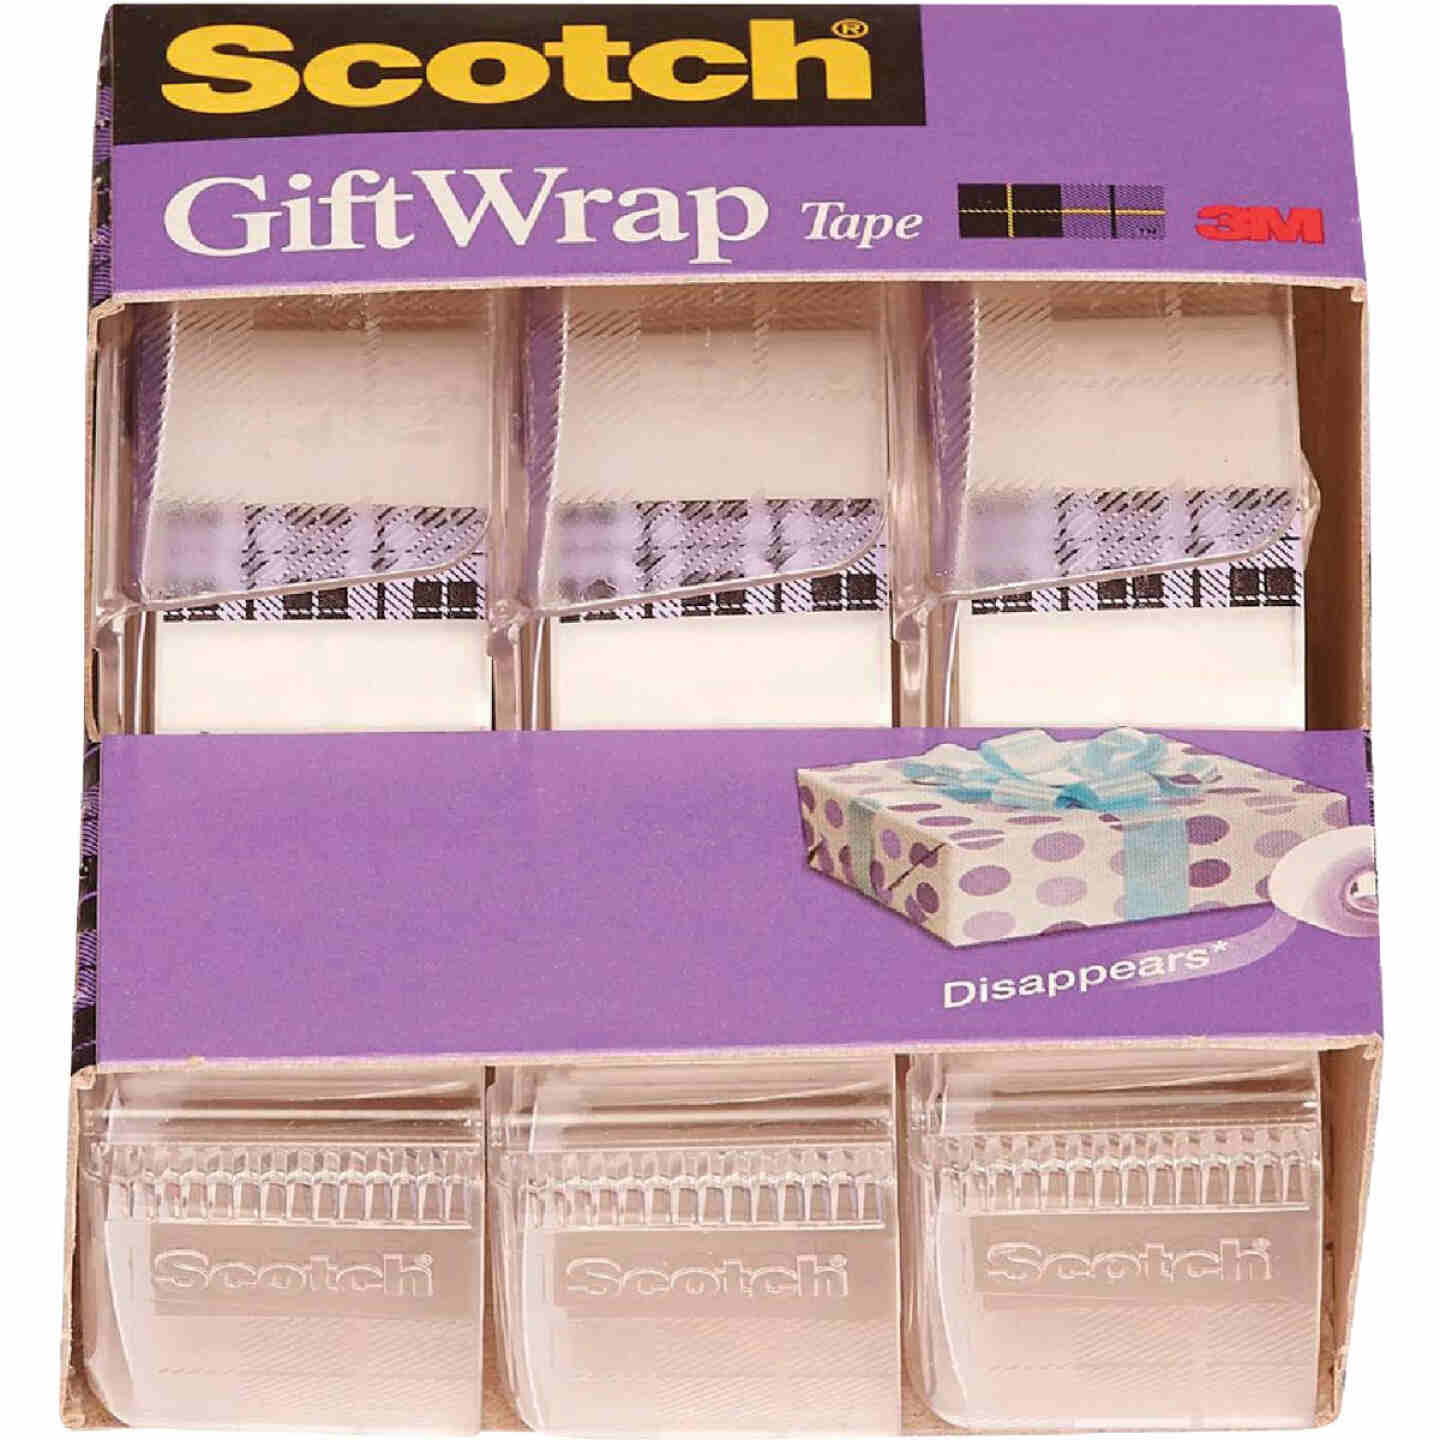 3M Scotch 3/4 In. x 300 In. Gift-Wrap Transparent Tape (3-Pack) Image 1